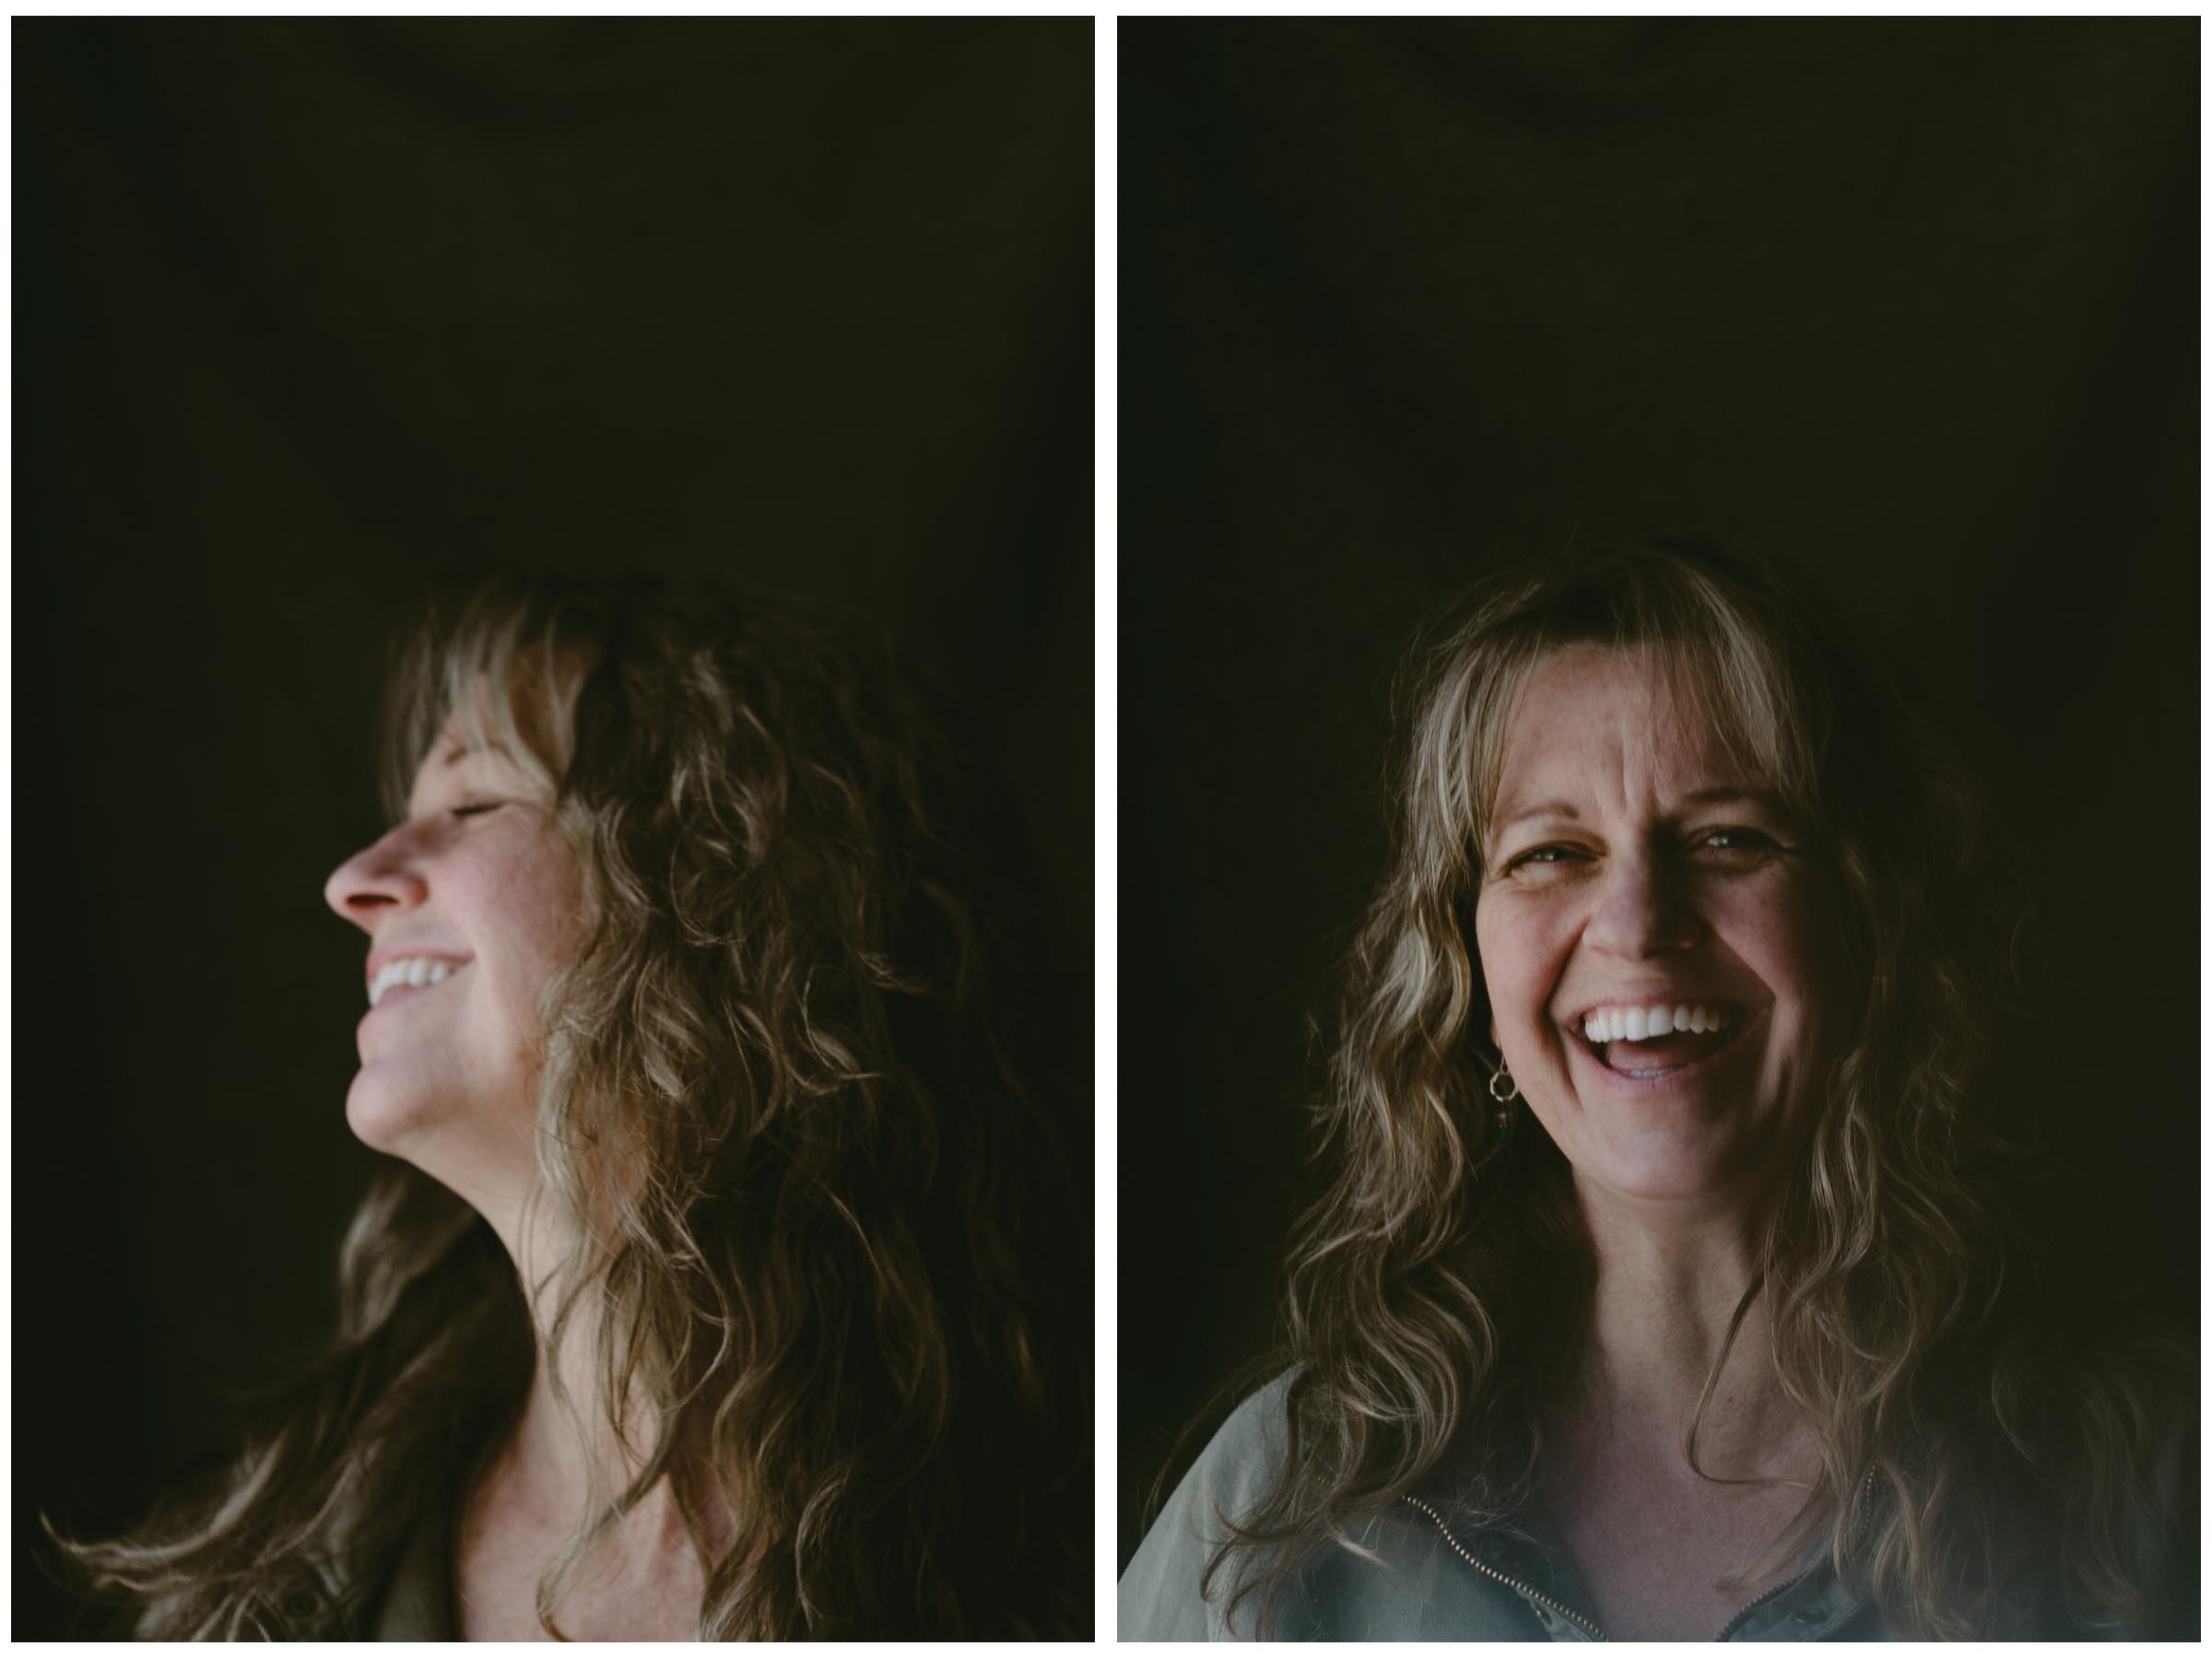 meet sandy - she's my momma // strong, resilient & full of love. the best kind of mom & woman // she's a massage therapist & loves the body & all the wonder & wisdom it gives us // she has a strong faith // she loves loves loves to dance especially to some Michael Jackson //honey humans series // two